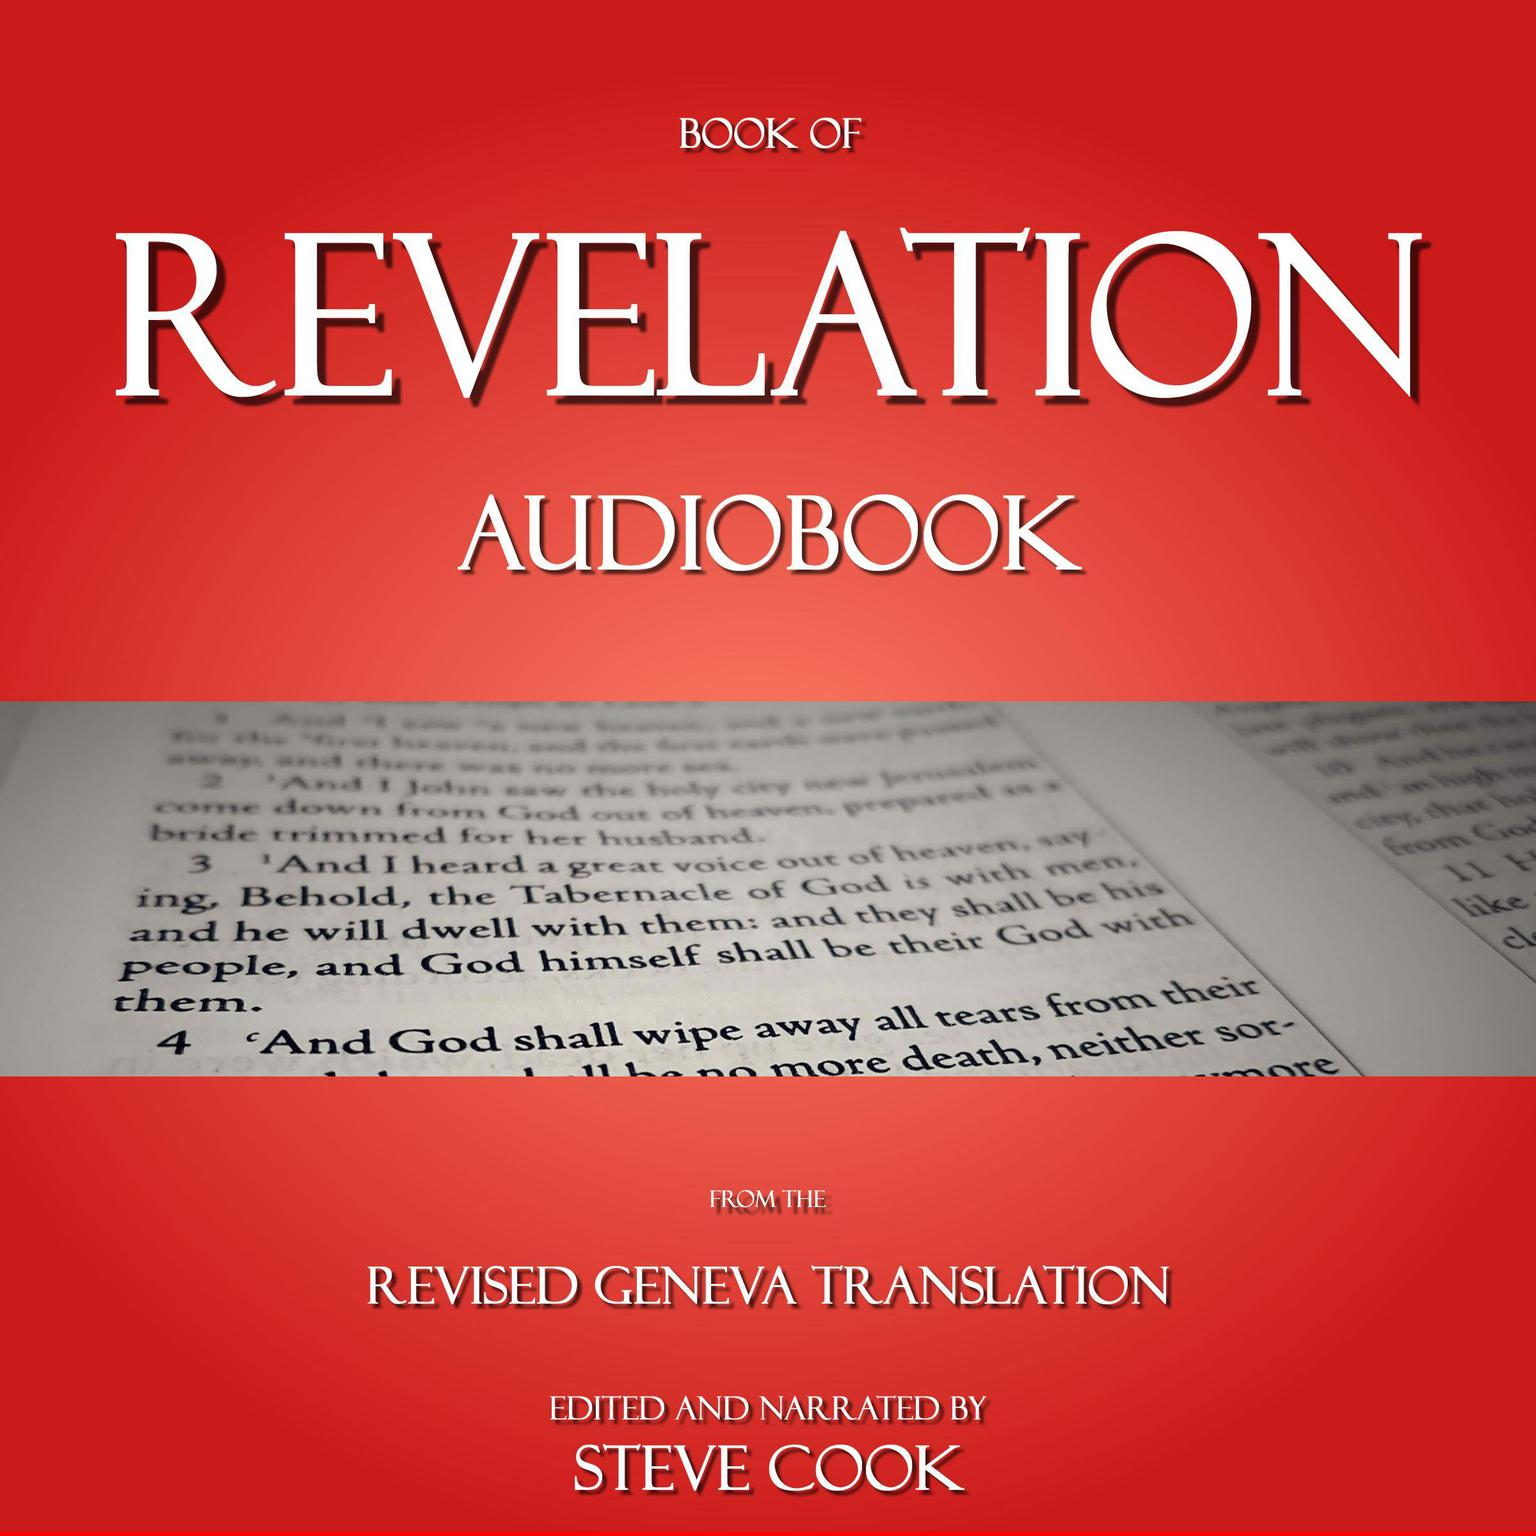 Book of Revelation Audiobook: From The Revised Geneva Translation: From the Revised Geneva Translation Audiobook, by Steve Cook